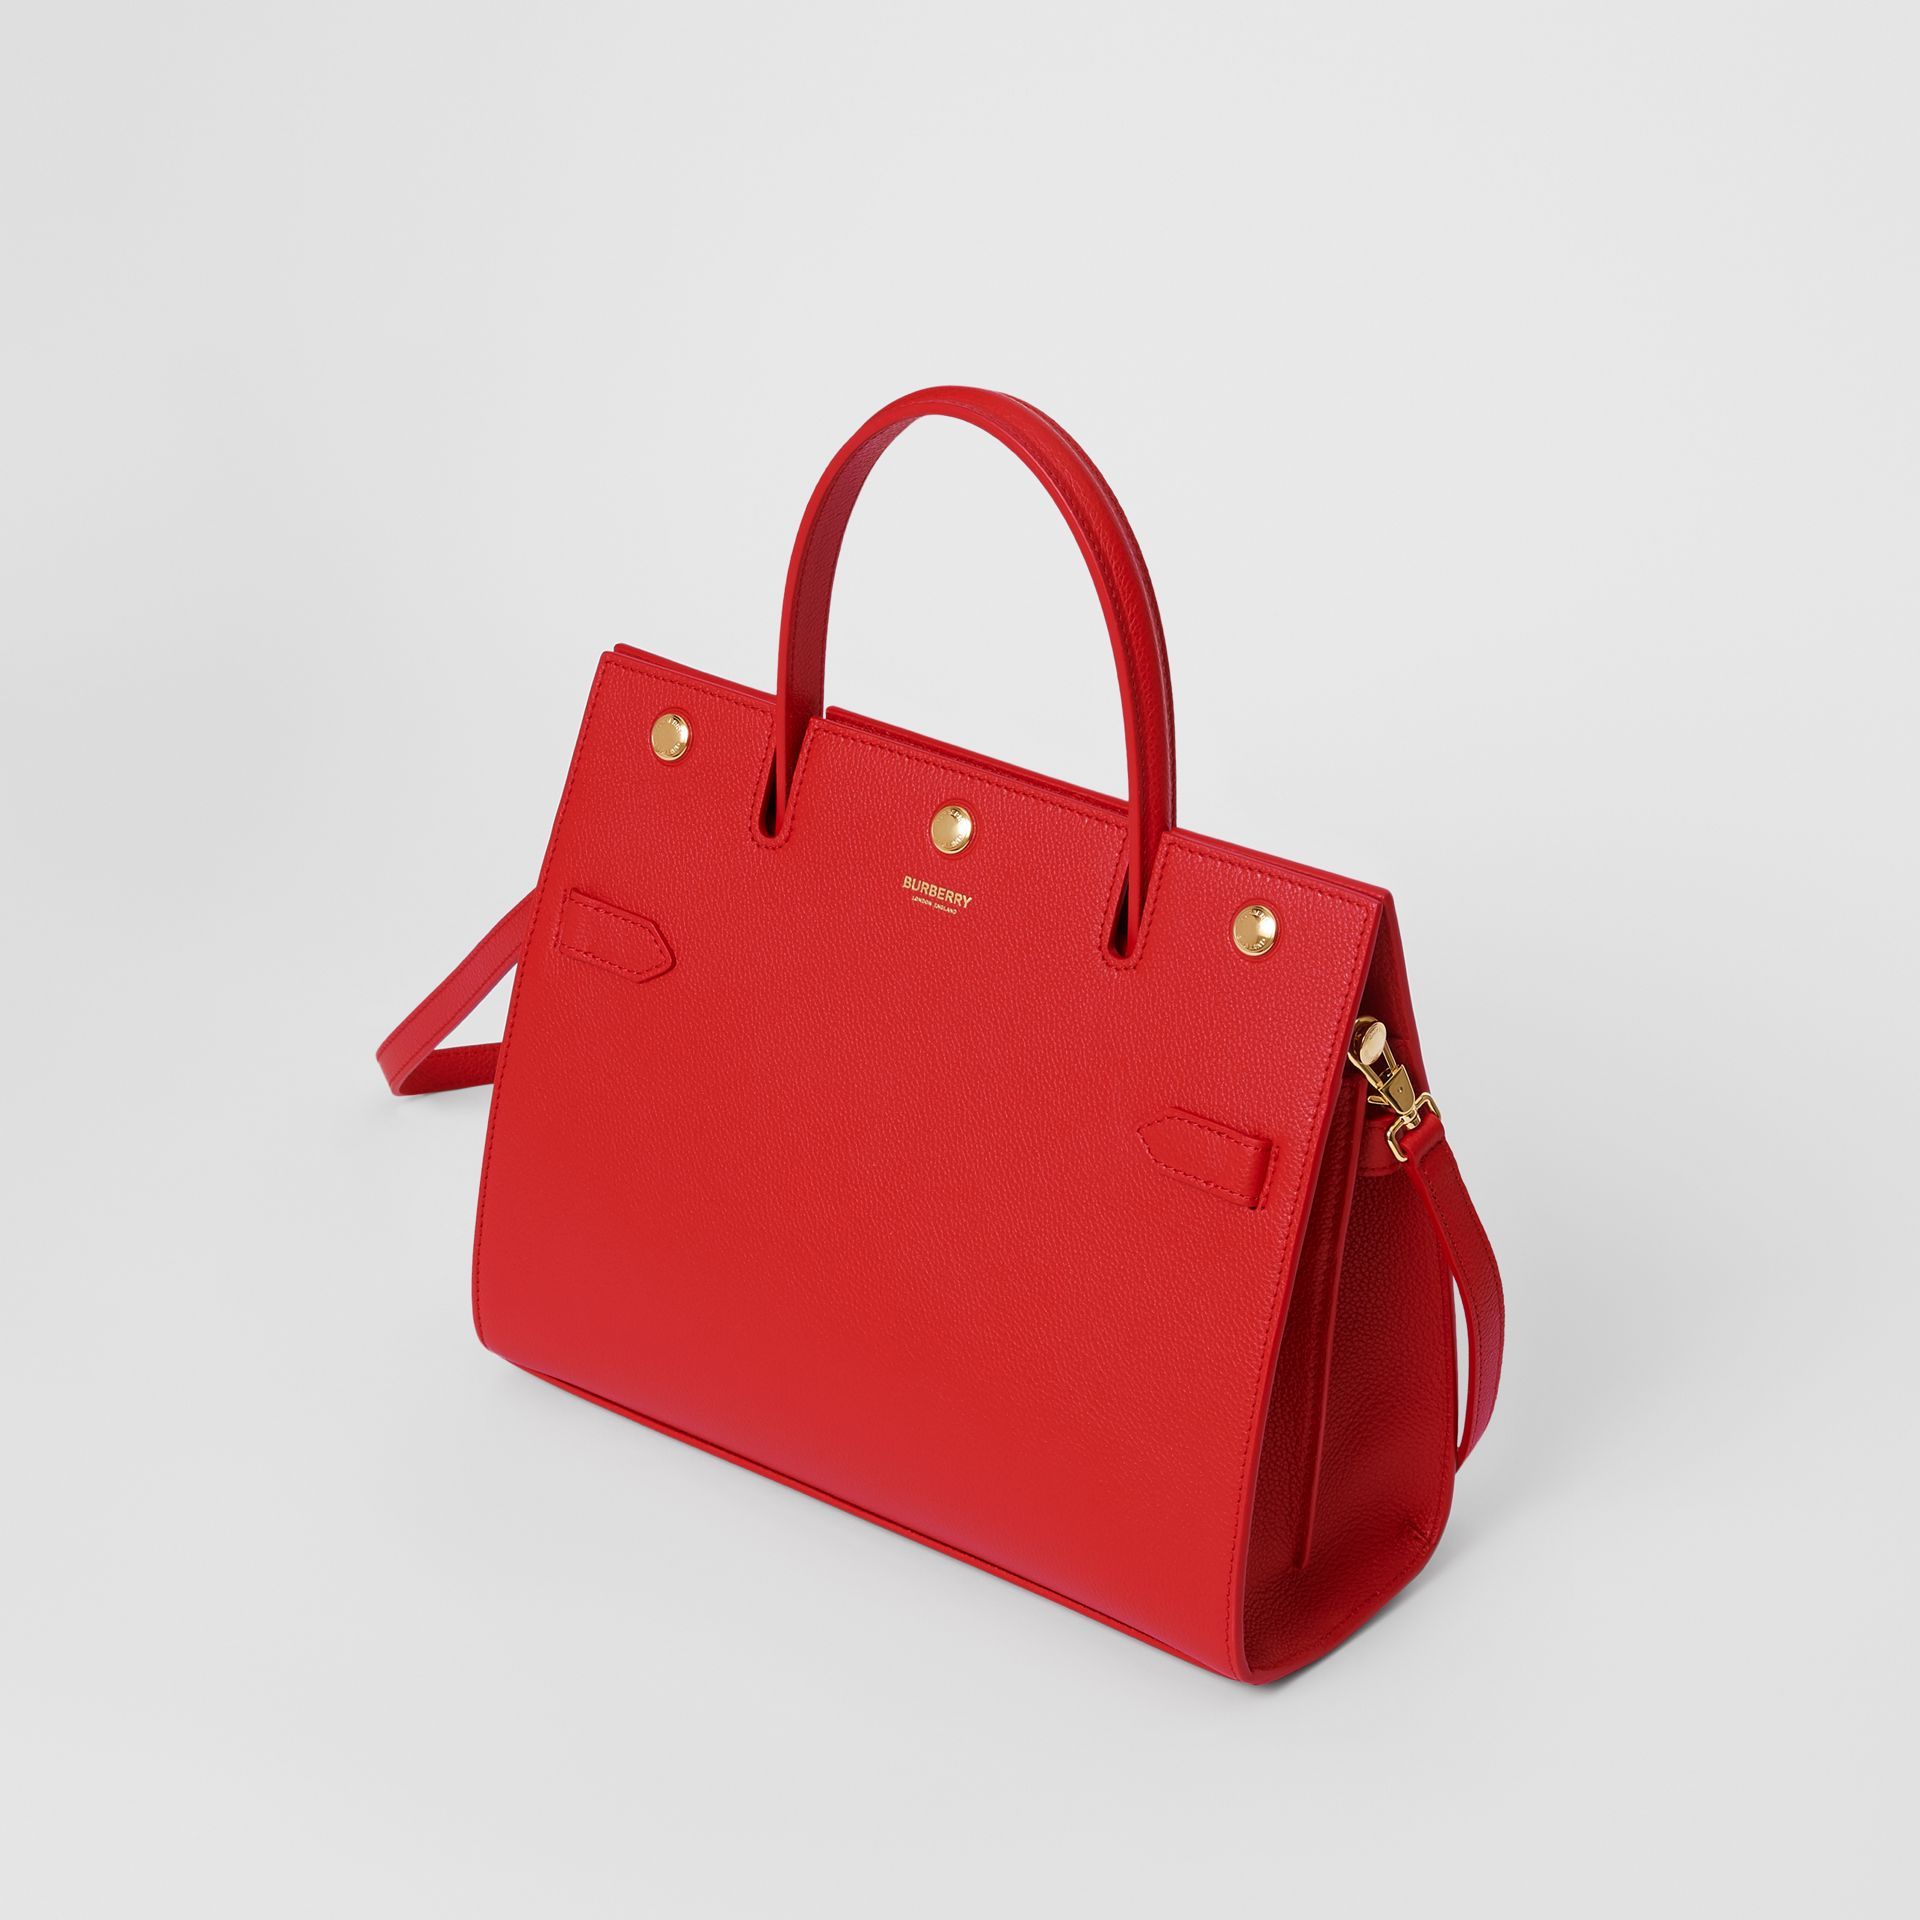 Small Leather Title Bag in Bright Red - Women | Burberry - gallery image 2